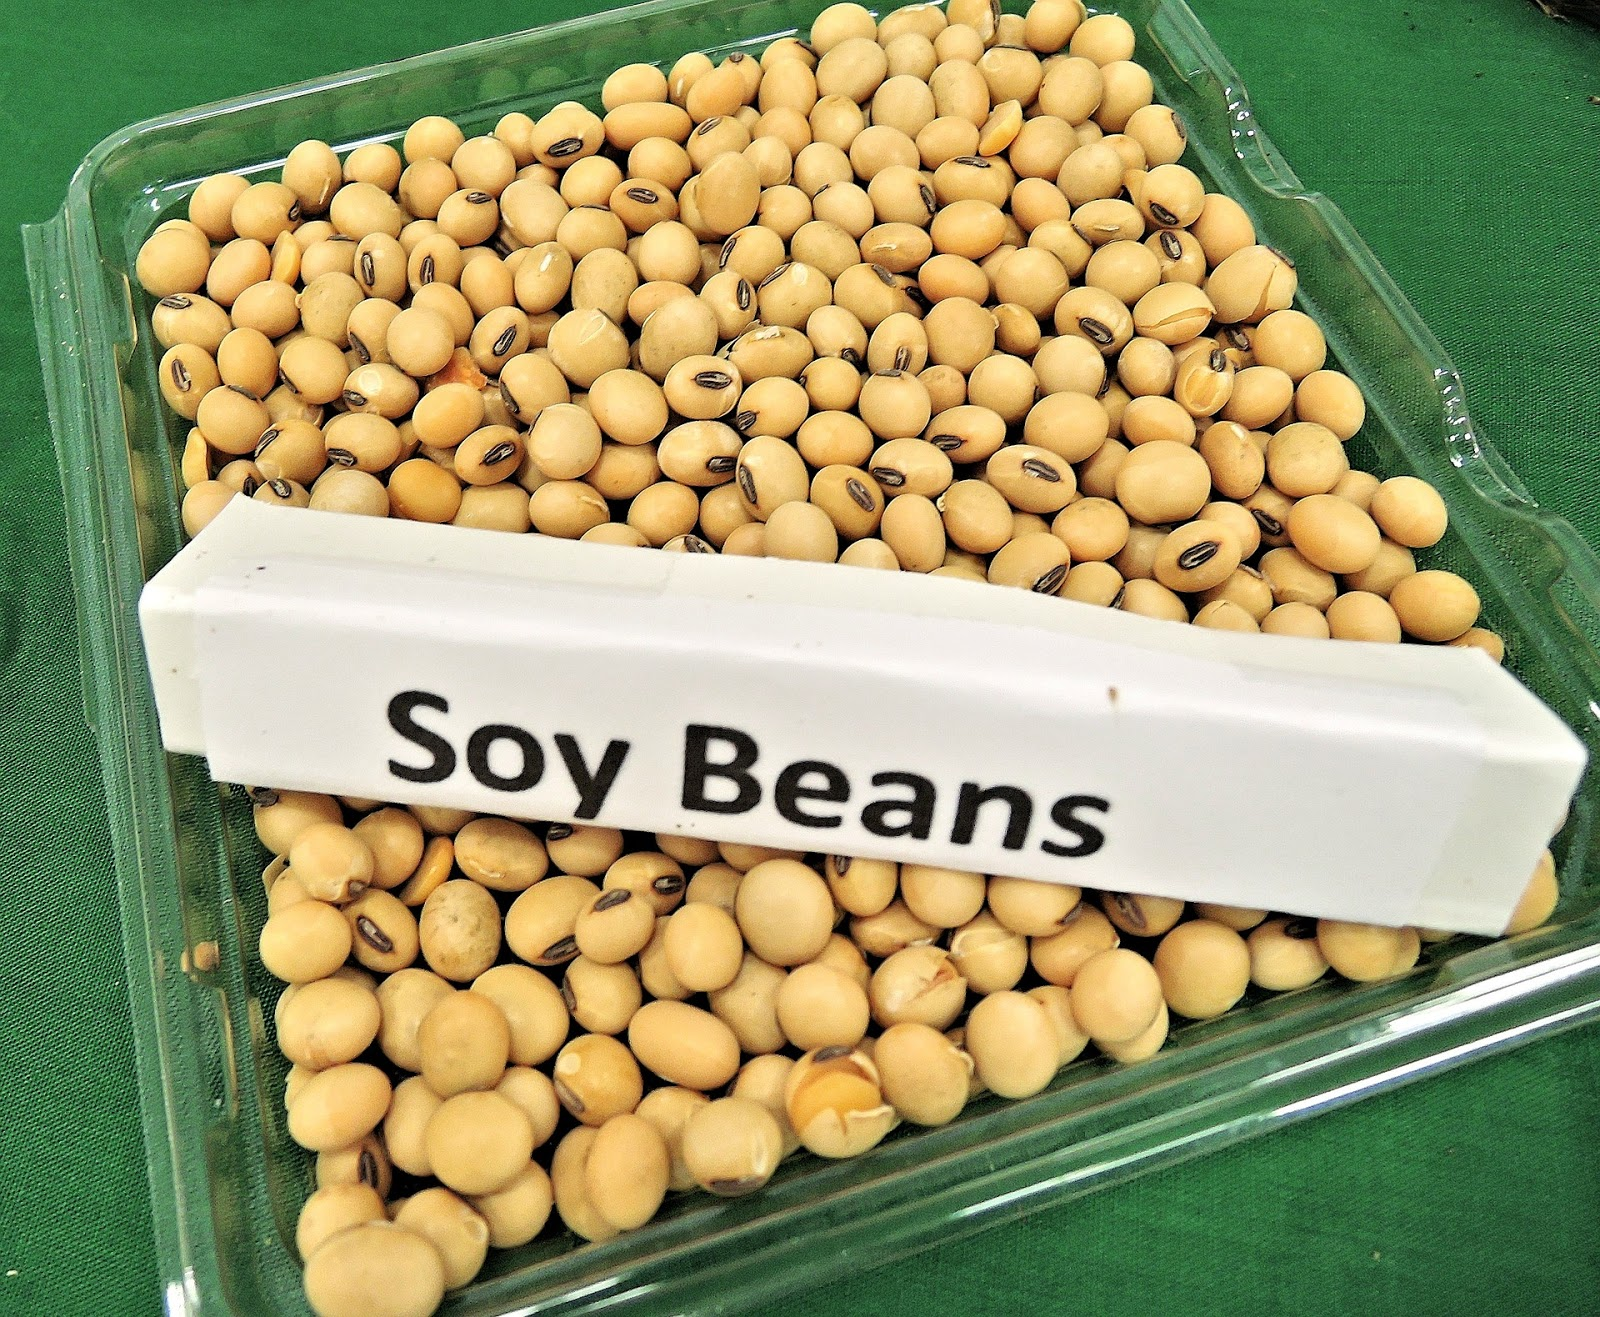 What is soy 66